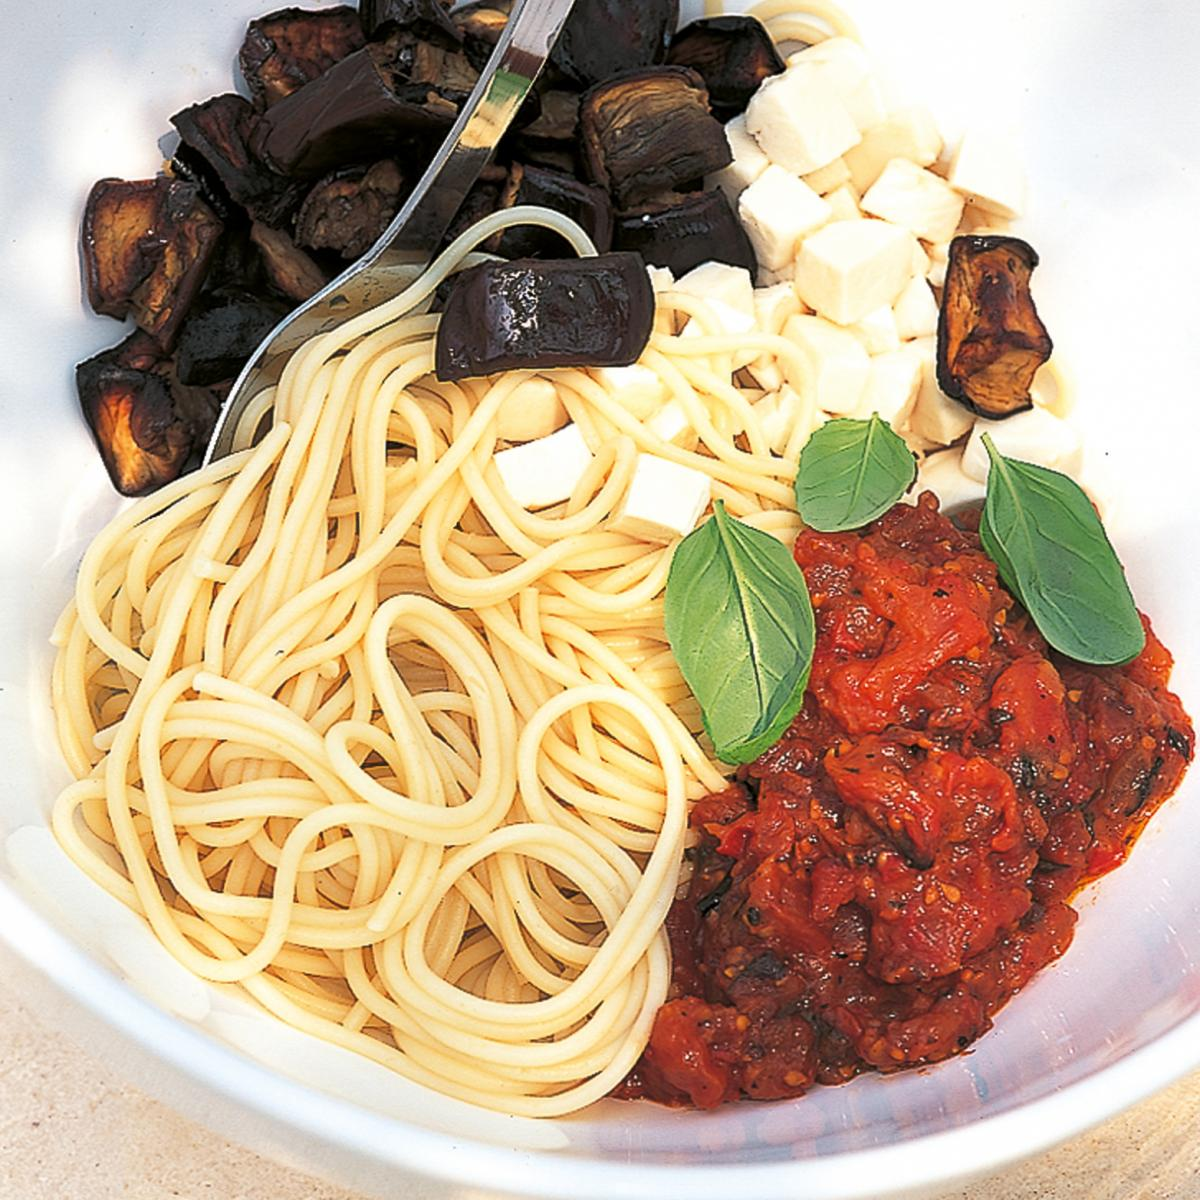 A picture of Delia's Sicilian Pasta with Roasted Tomatoes and Aubergines recipe